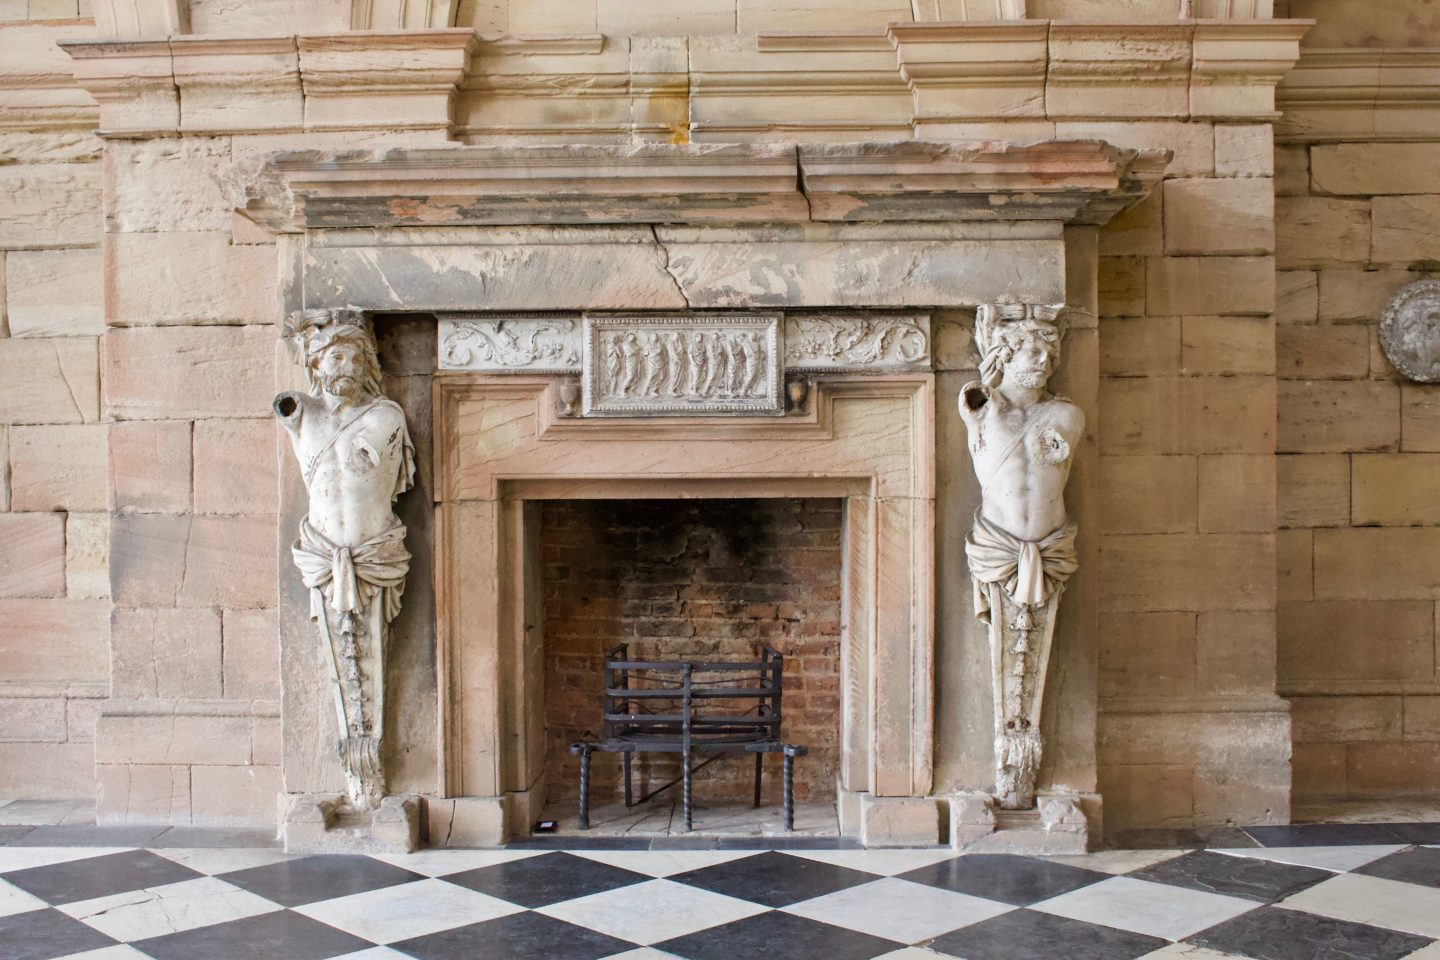 AD: Seaton Delaval Hall is under construction - what to expect...